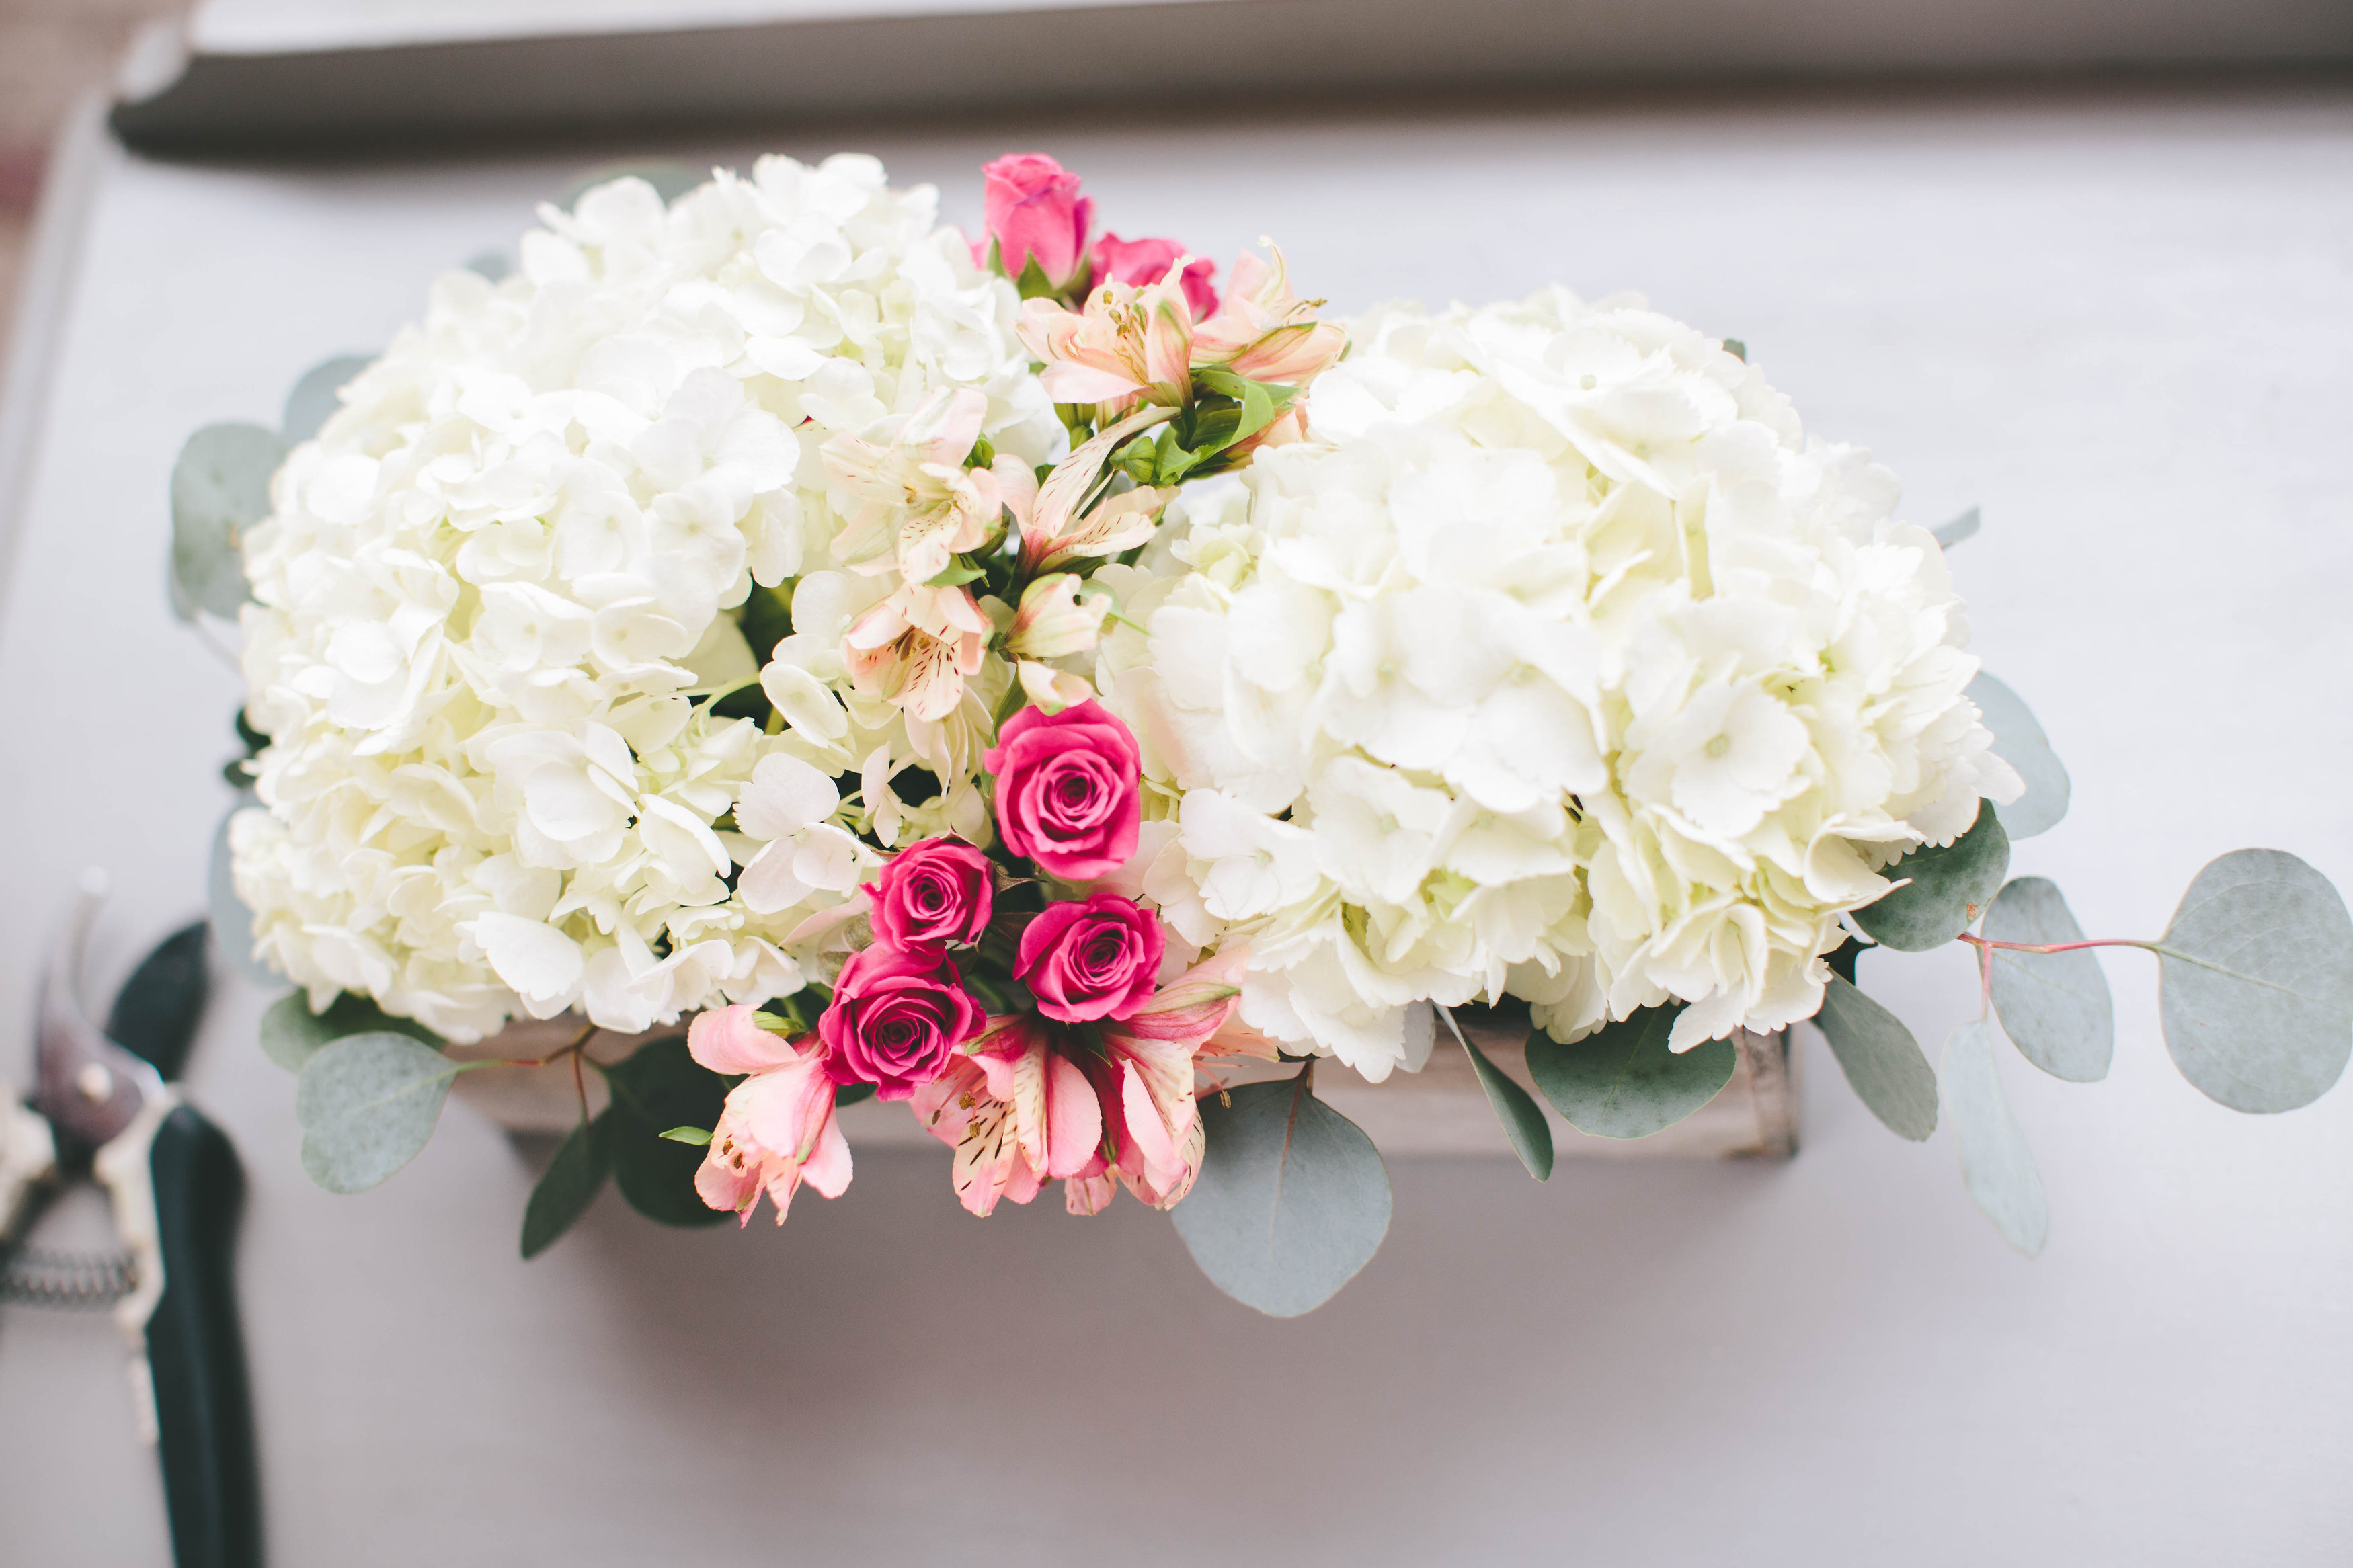 How To: A Modern DIY Hydrangea Centerpiece That Anyone Can Make | A ...